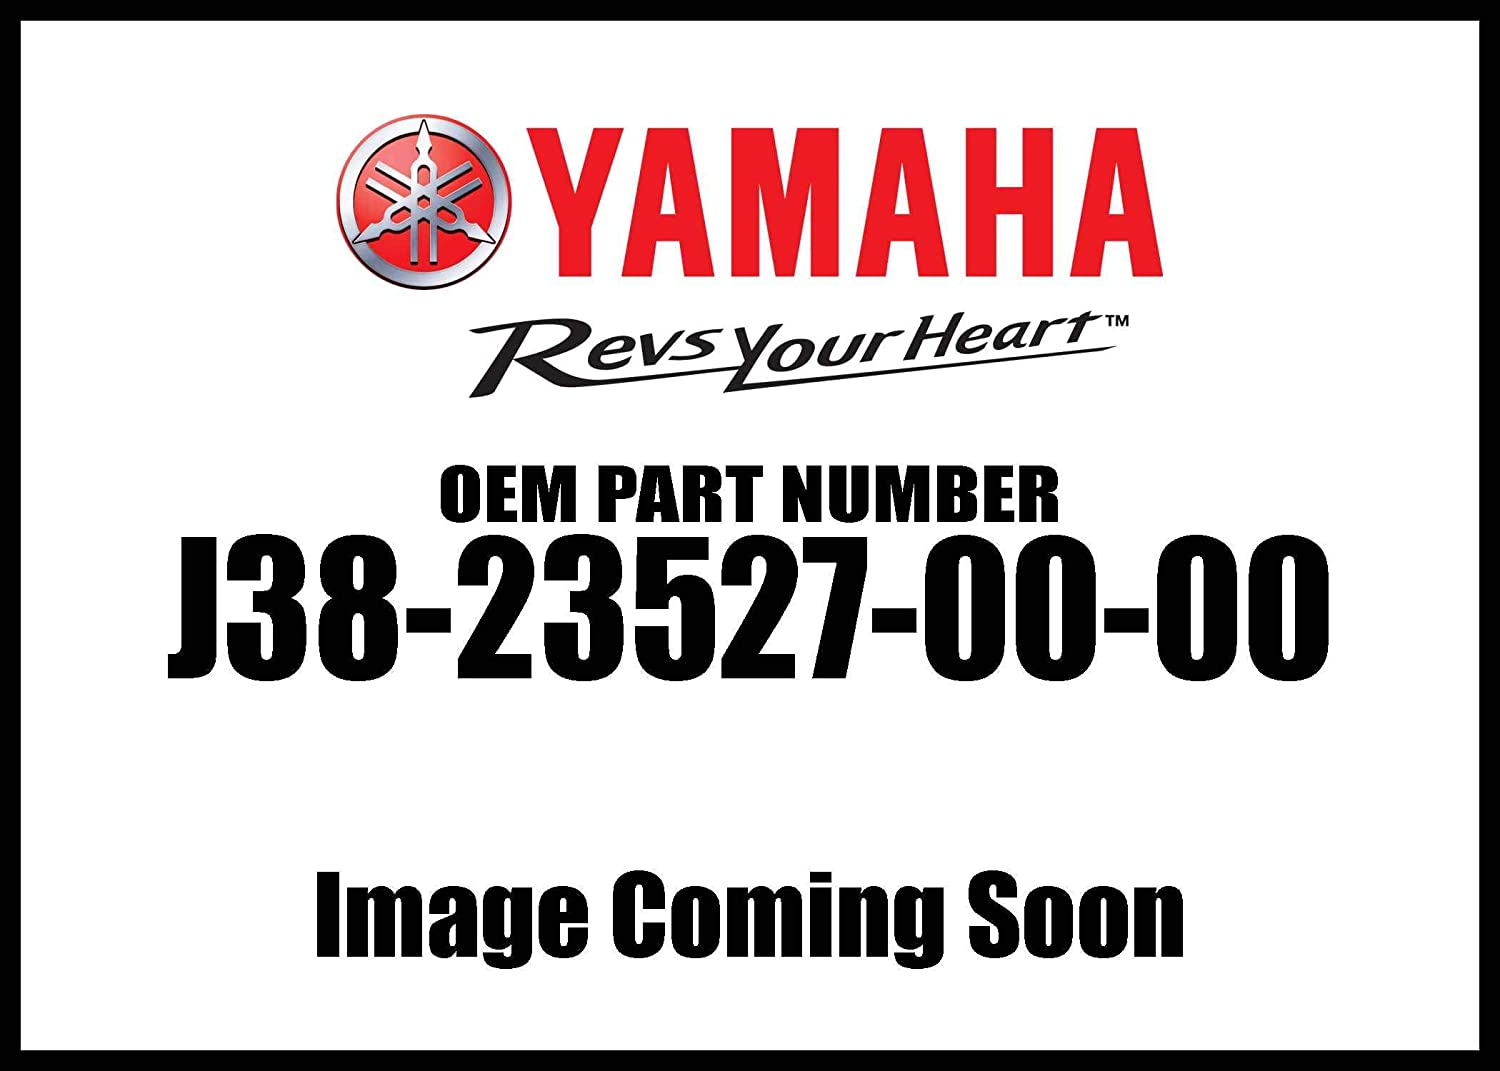 Yamaha J38-23527-00-00 SEAL, DUST 1; J38235270000